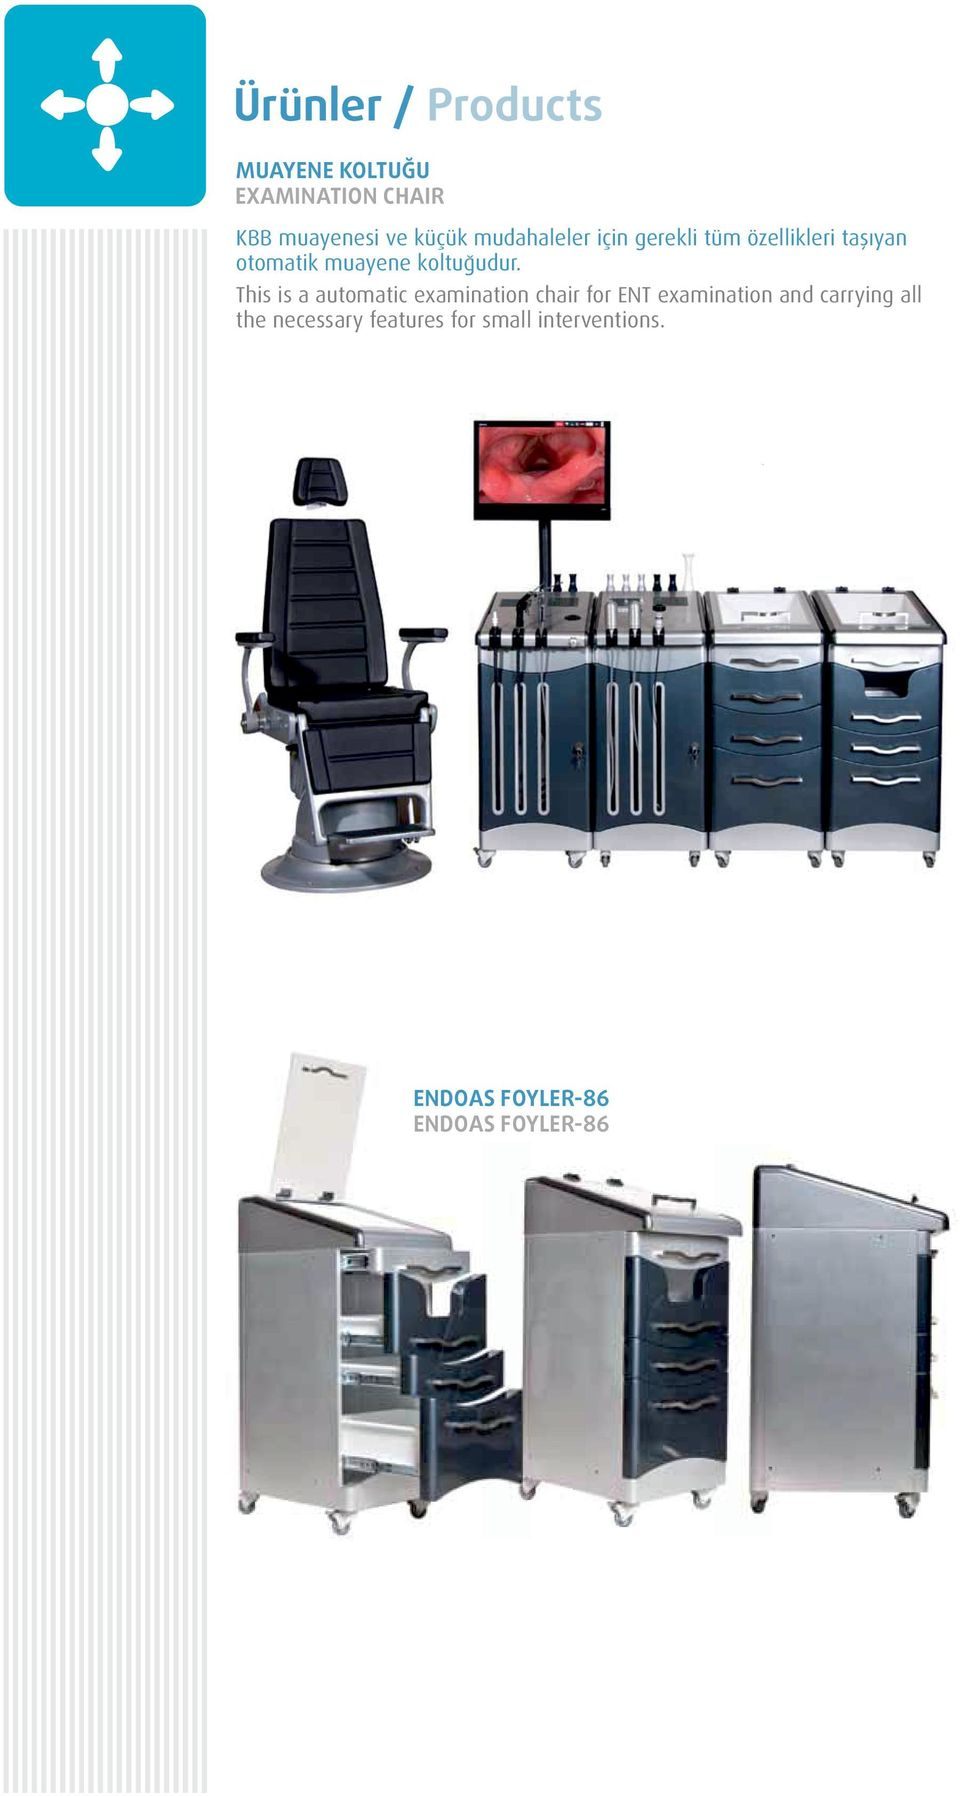 This is a automatic examination chair for ENT examination and carrying all